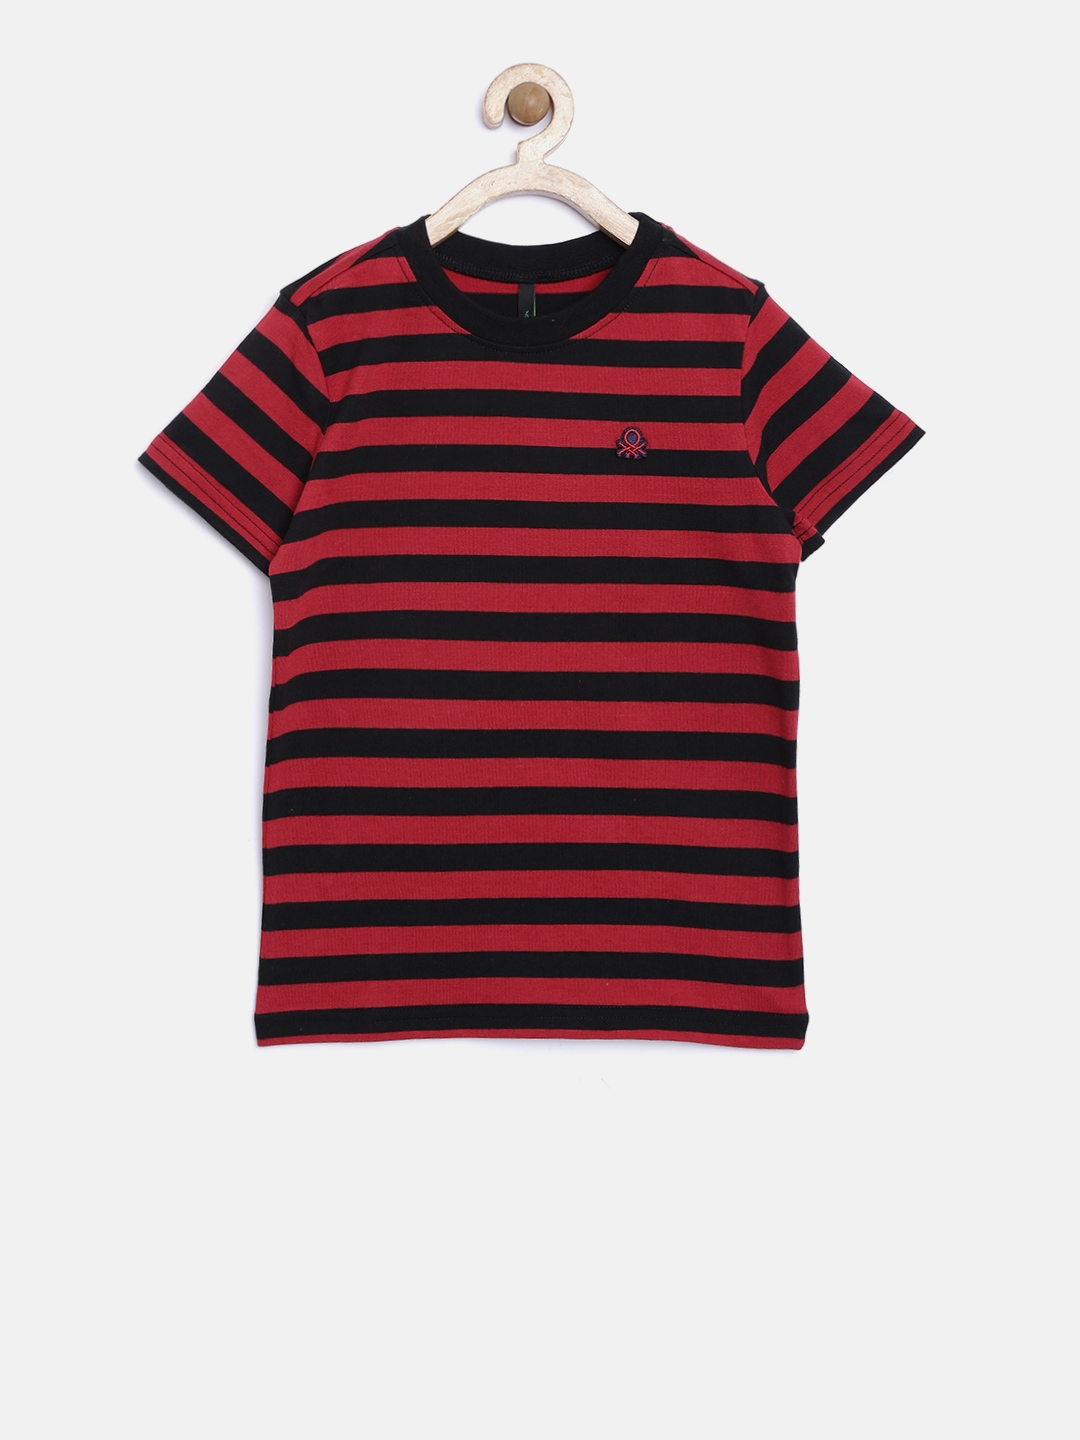 Shop for striped shirt womens at appzdnatw.cf Free Shipping. Free Returns. All the time.